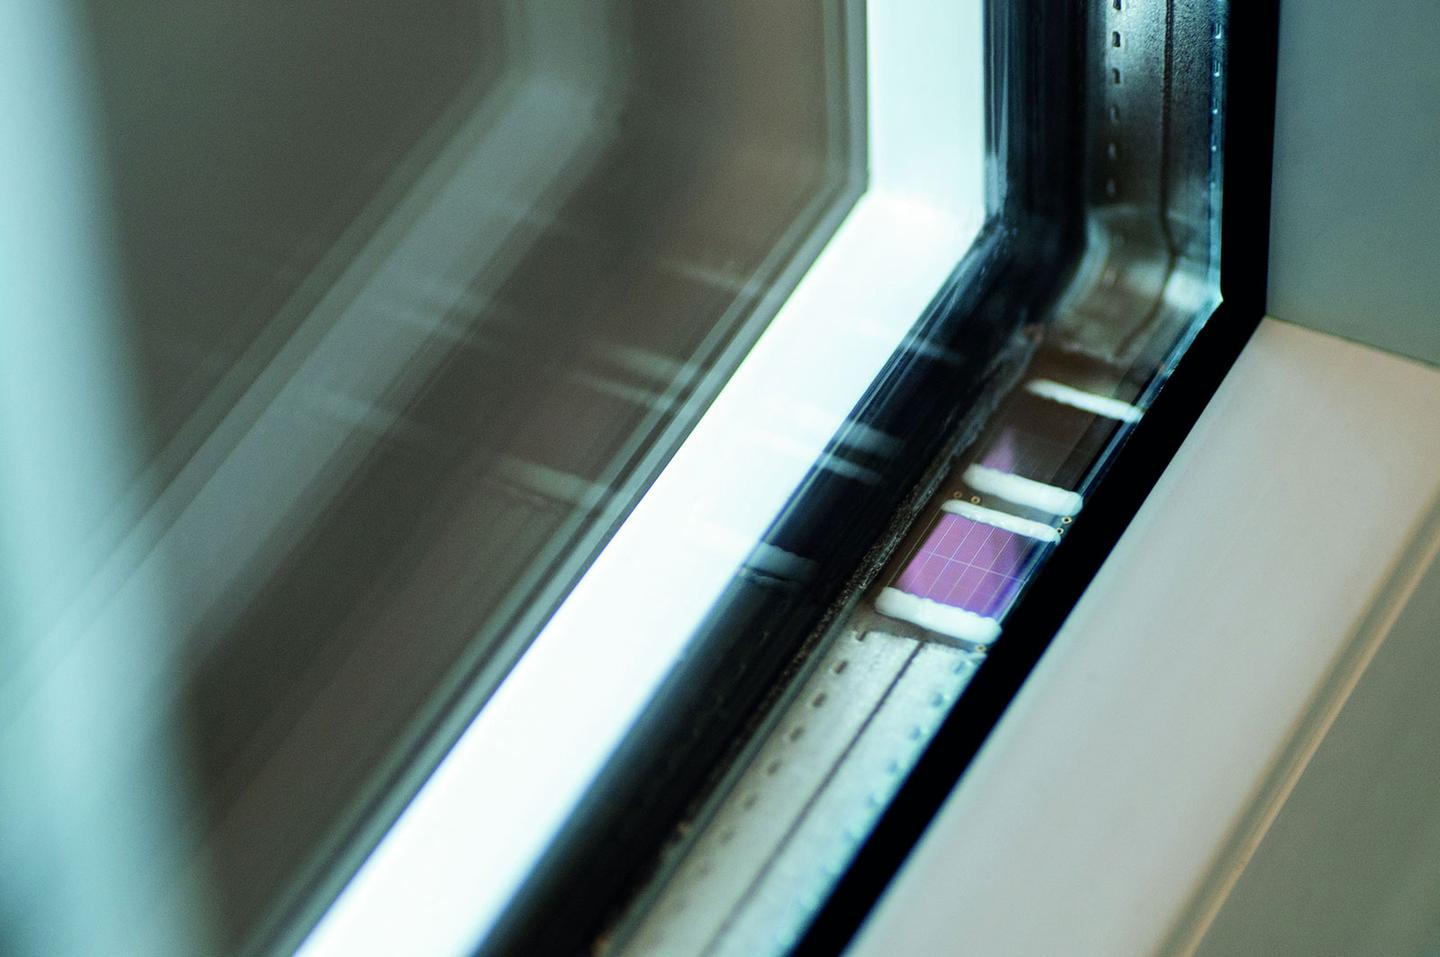 Fraunhofer's solar-powered radio sensor chip, mounted in a window